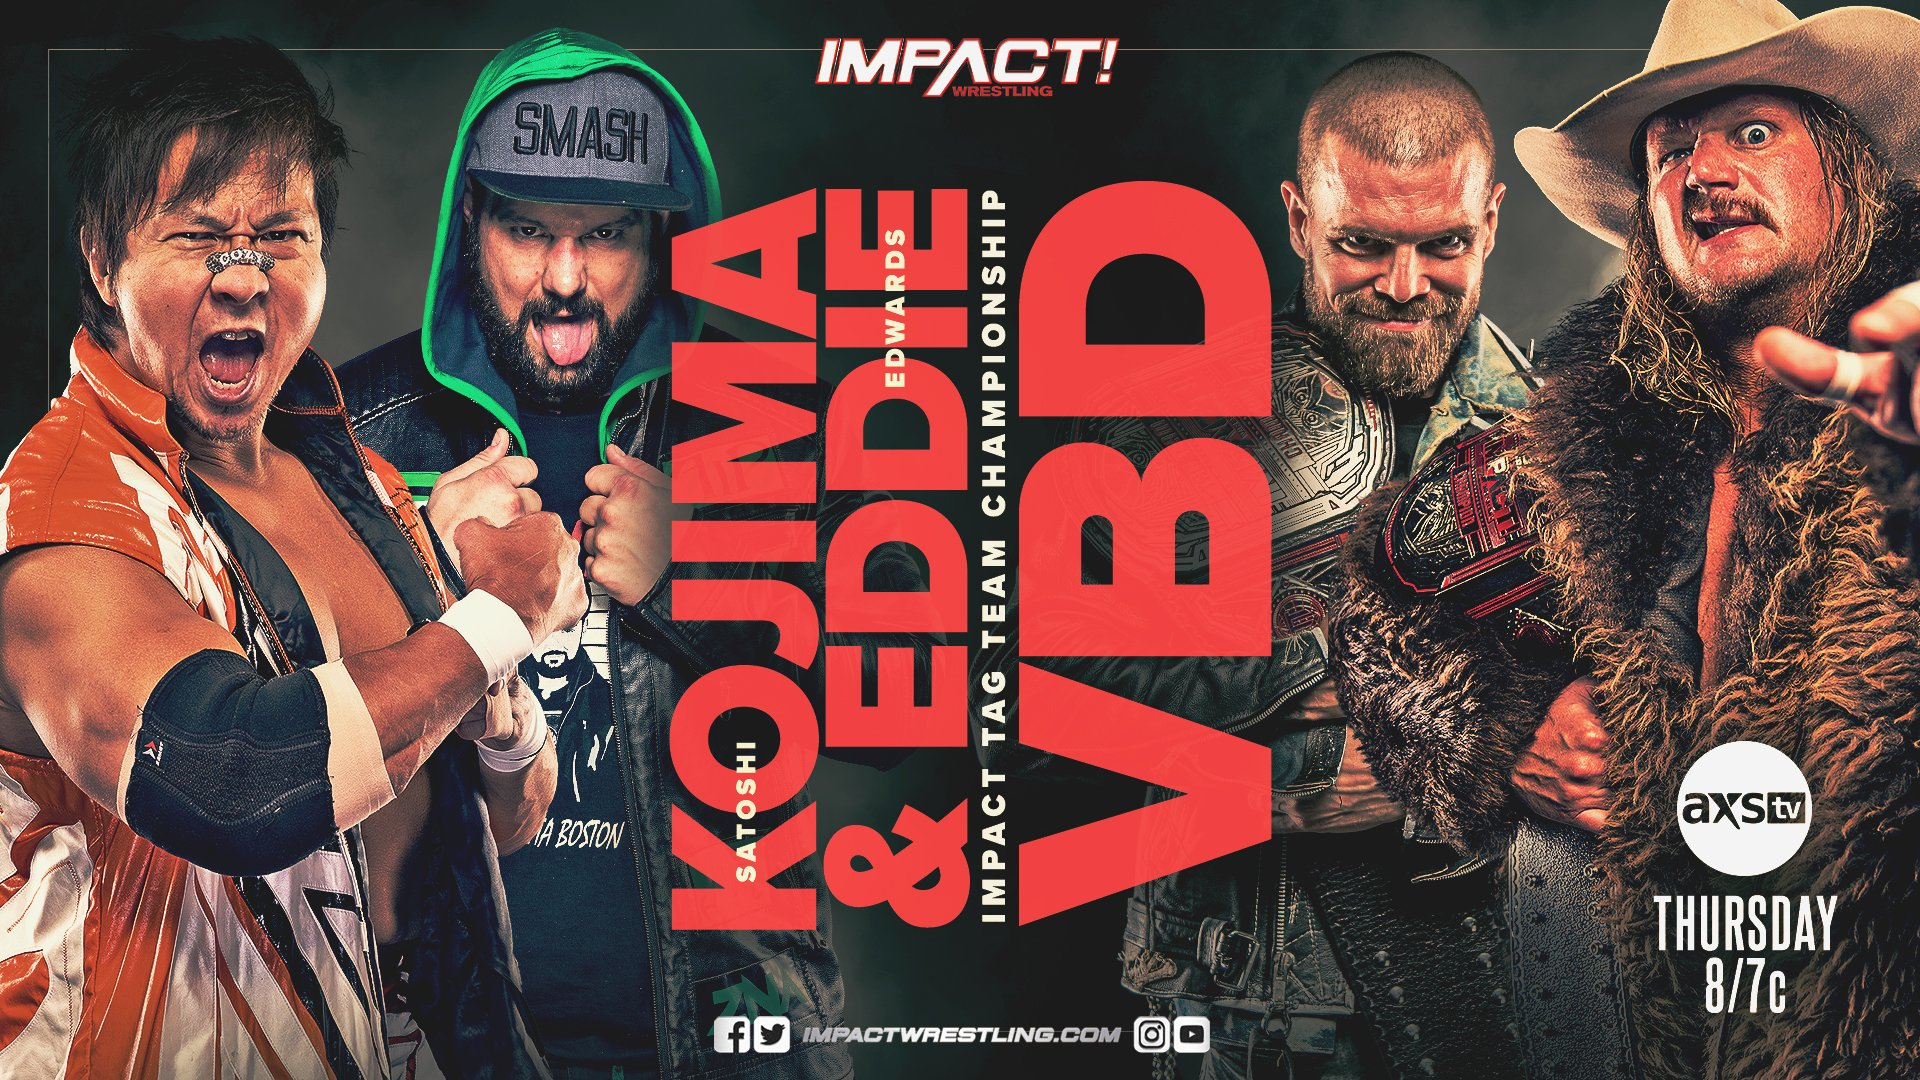 Eddie Edwards and Kojima vs Violent By Design For The Impact Wrestling Tag Team Championships